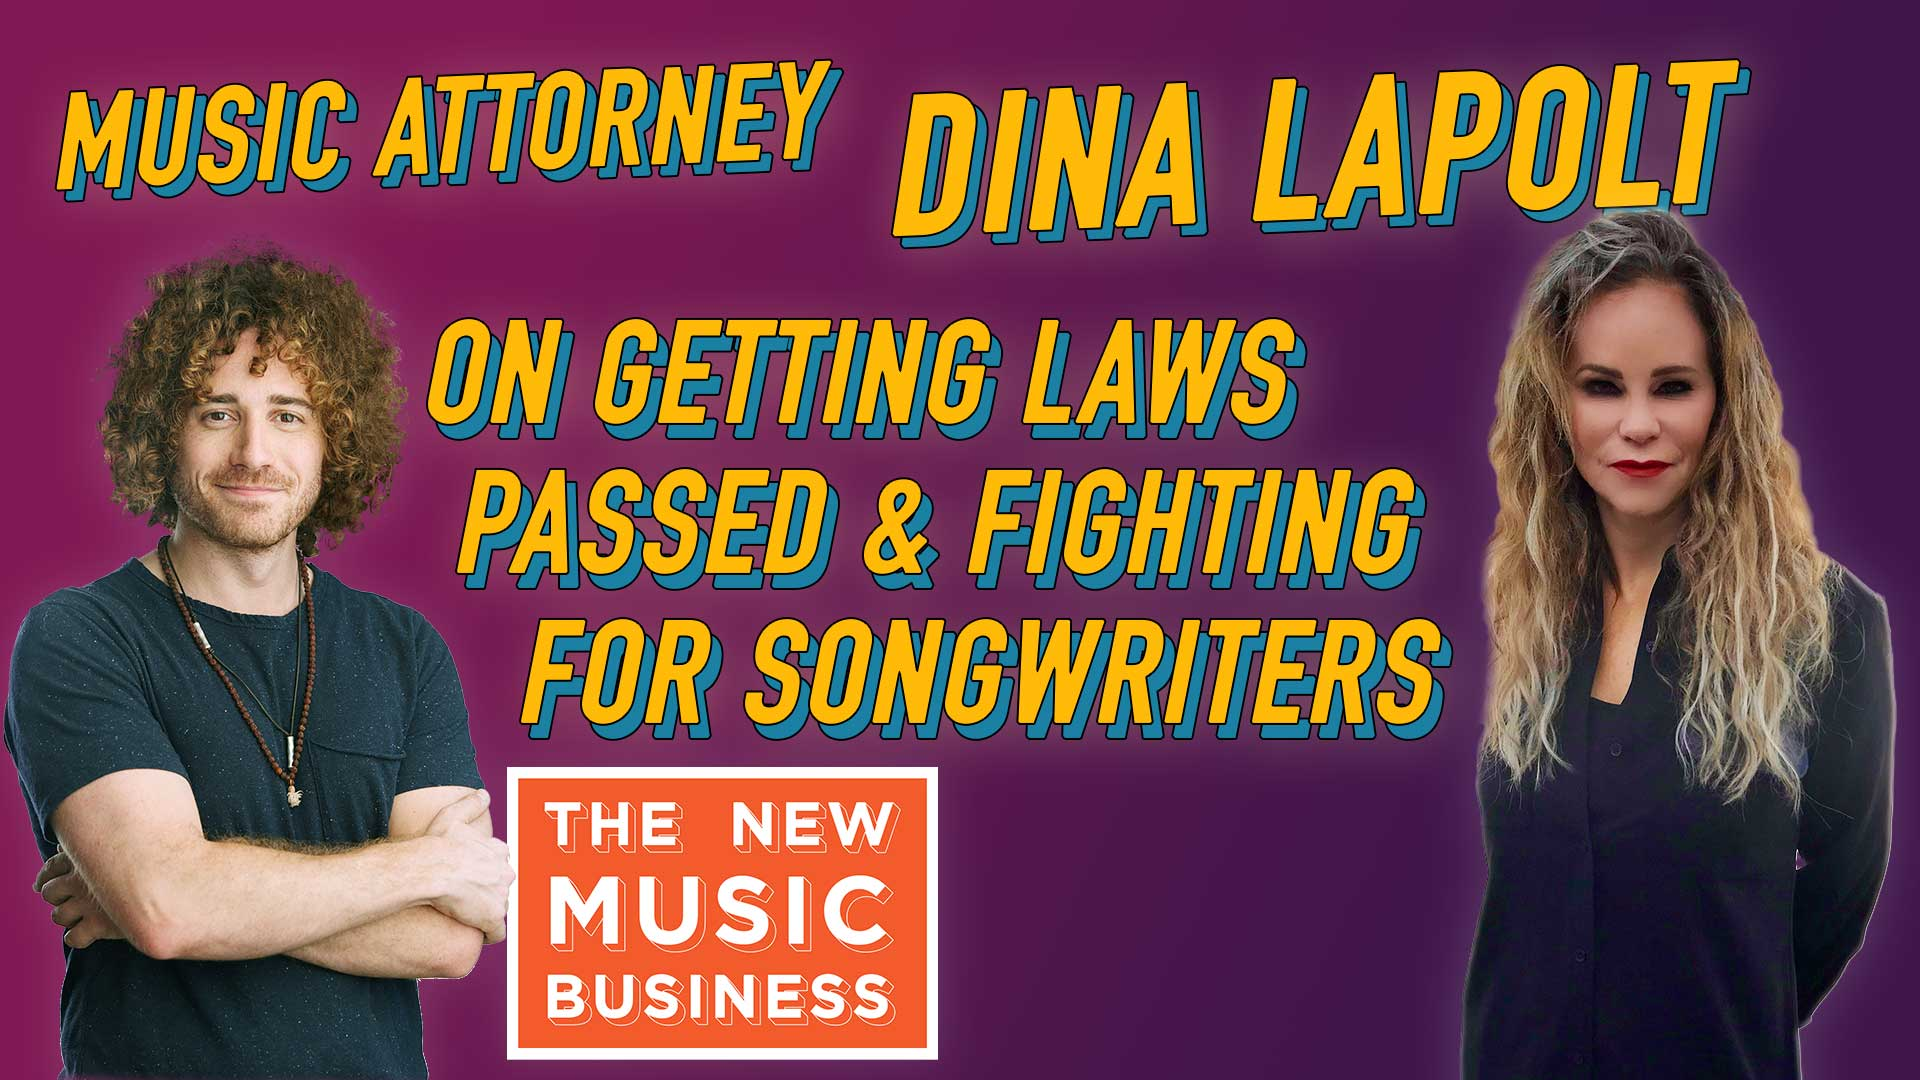 Dina LaPolt New Music Business with Ari Herstand